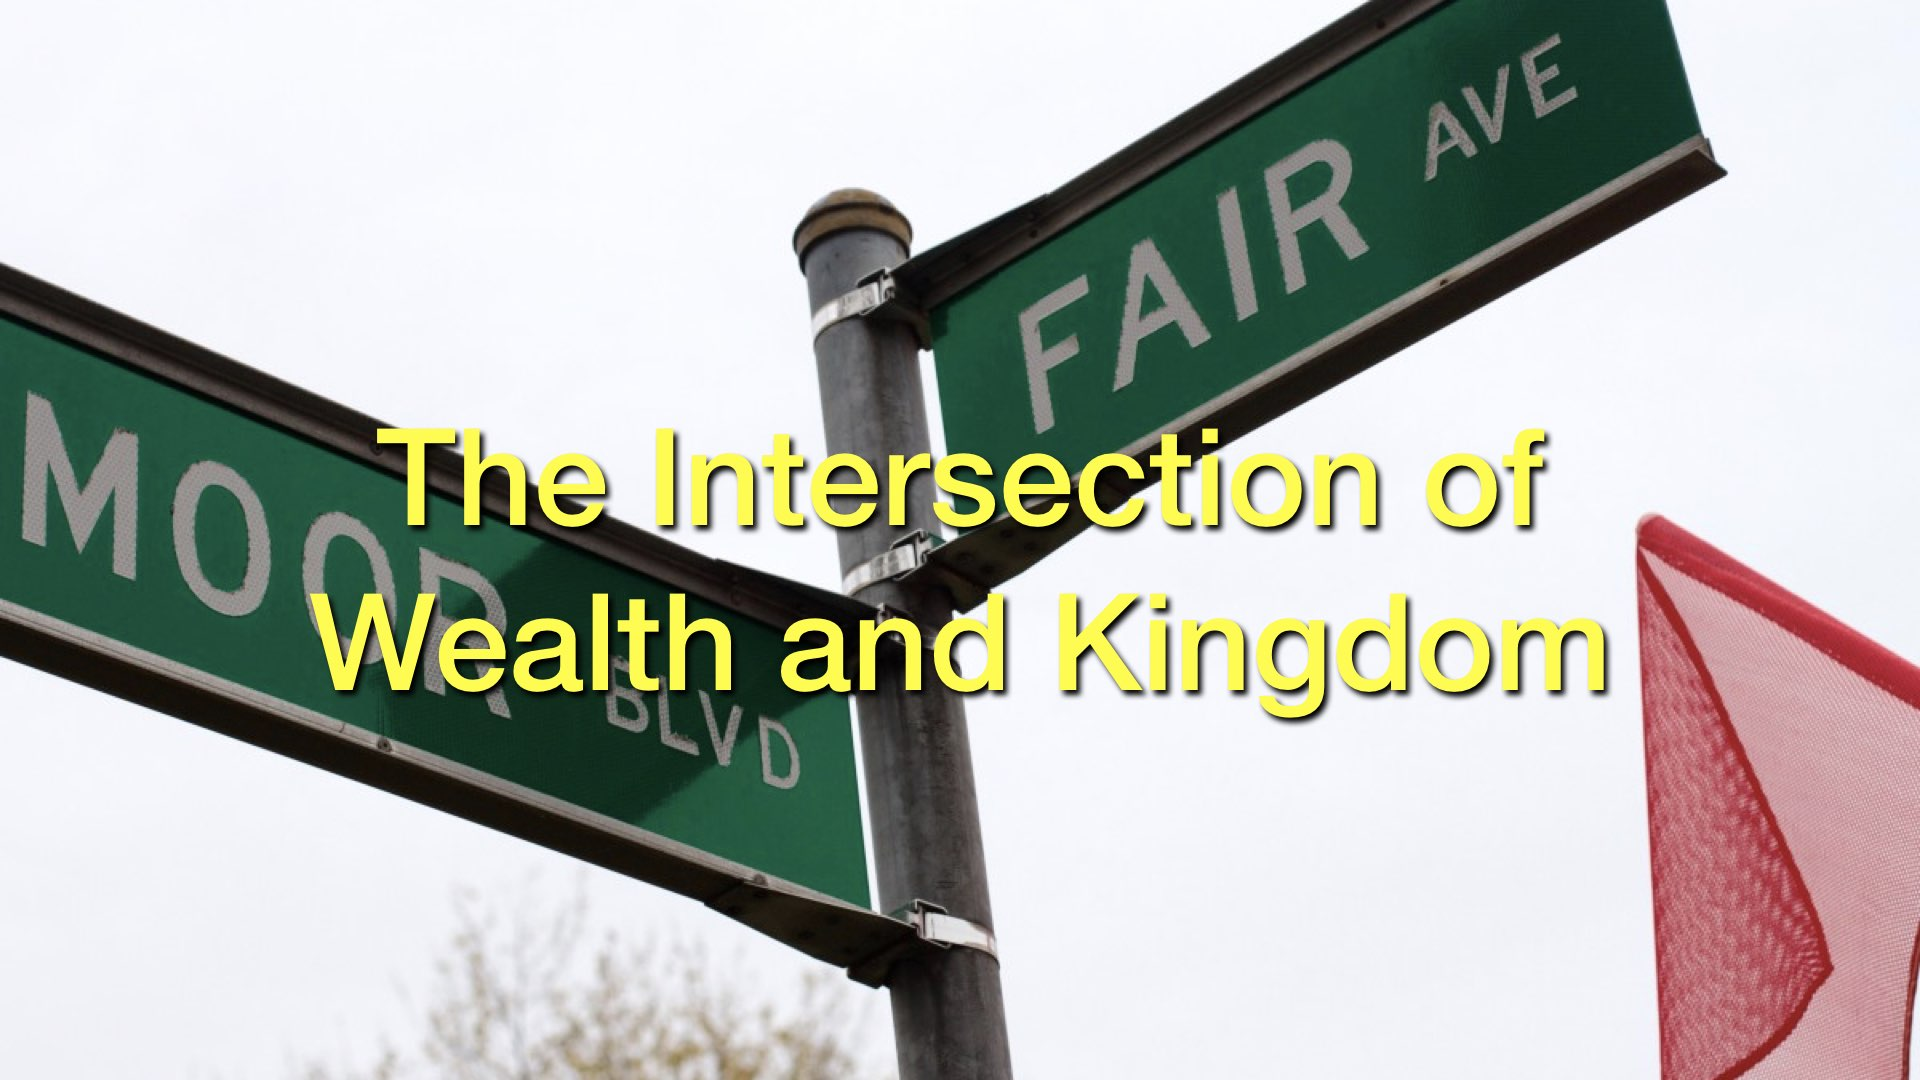 The Intersection of Wealth and Kingdom